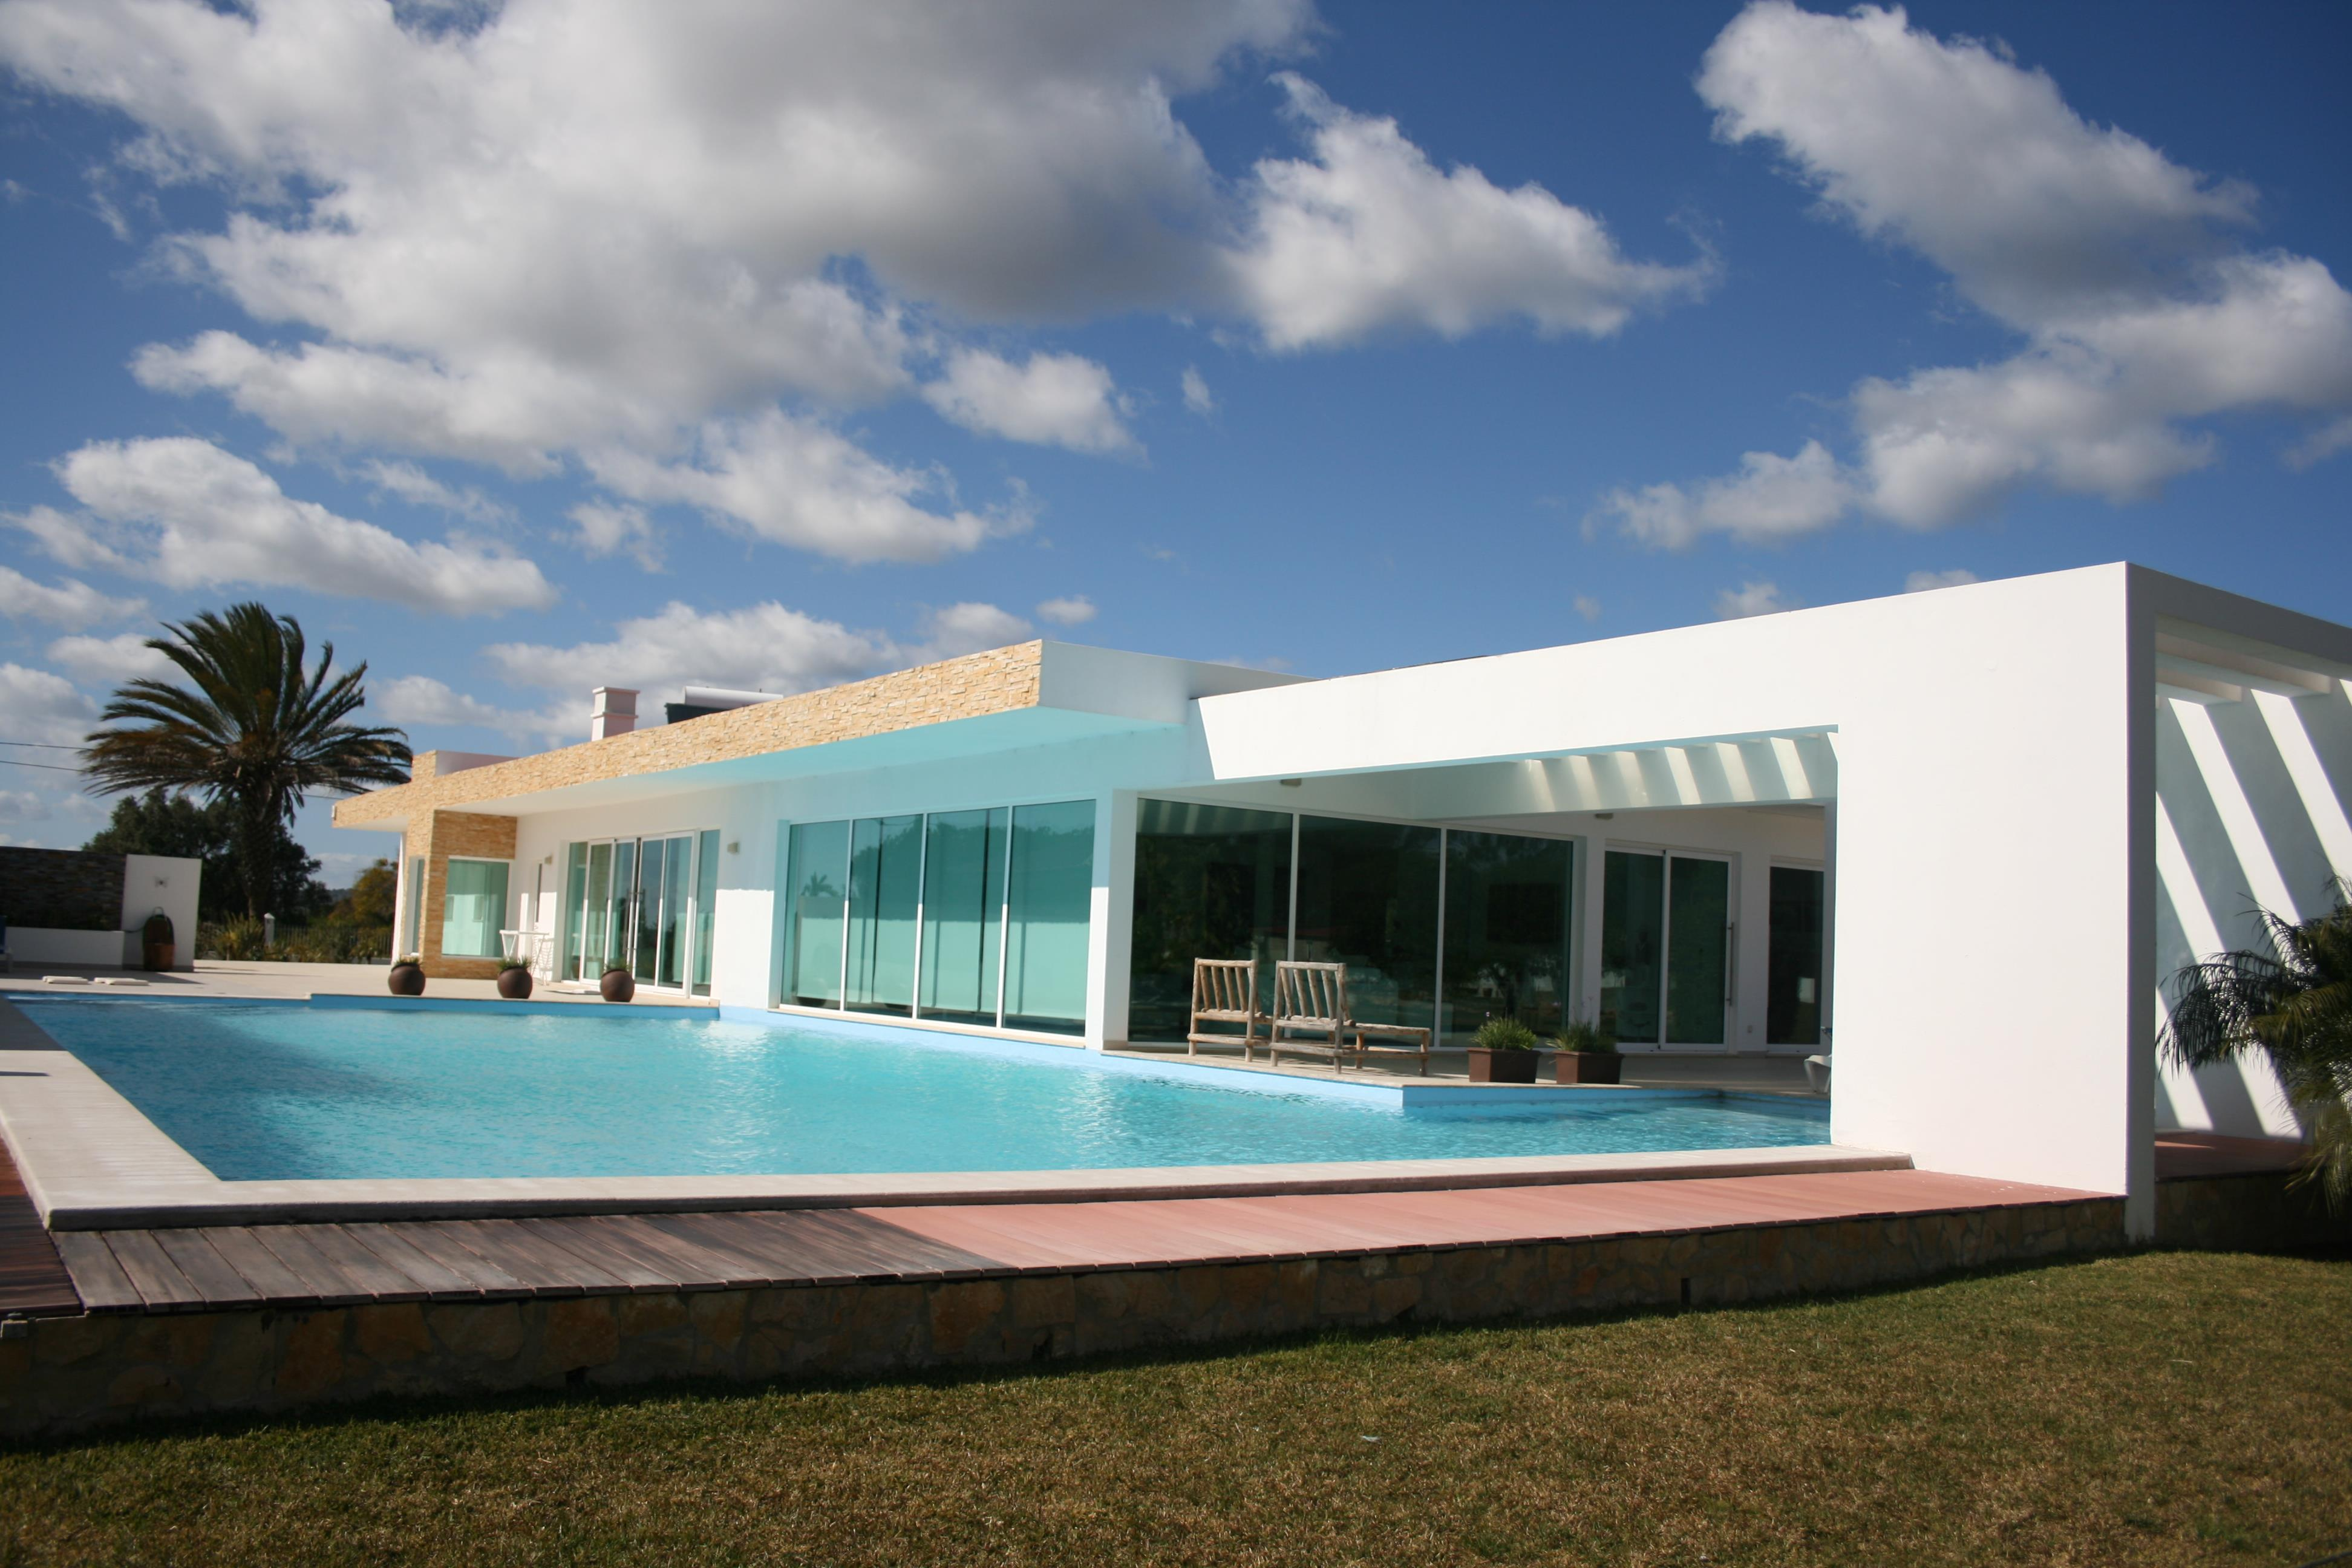 Single Family Home for Sale at Detached house, 5 bedrooms, for Sale Loule, Algarve, 8125-428 Portugal